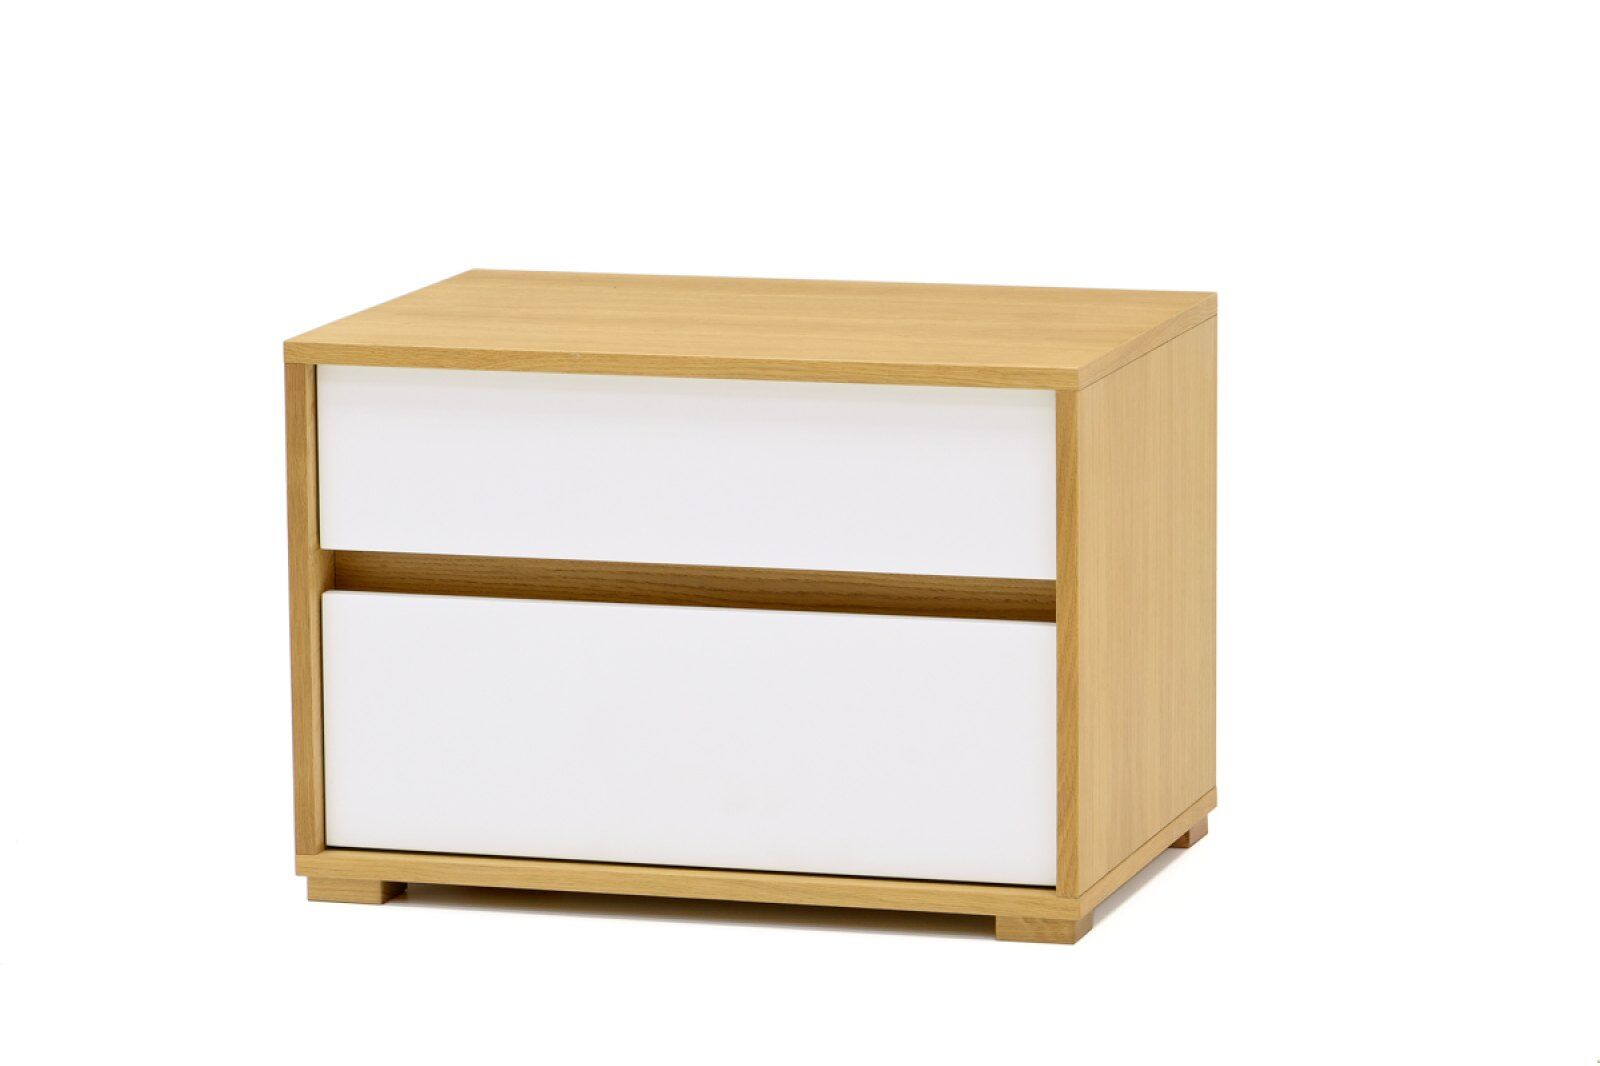 Clarion Bedside Table 60 cm / 1